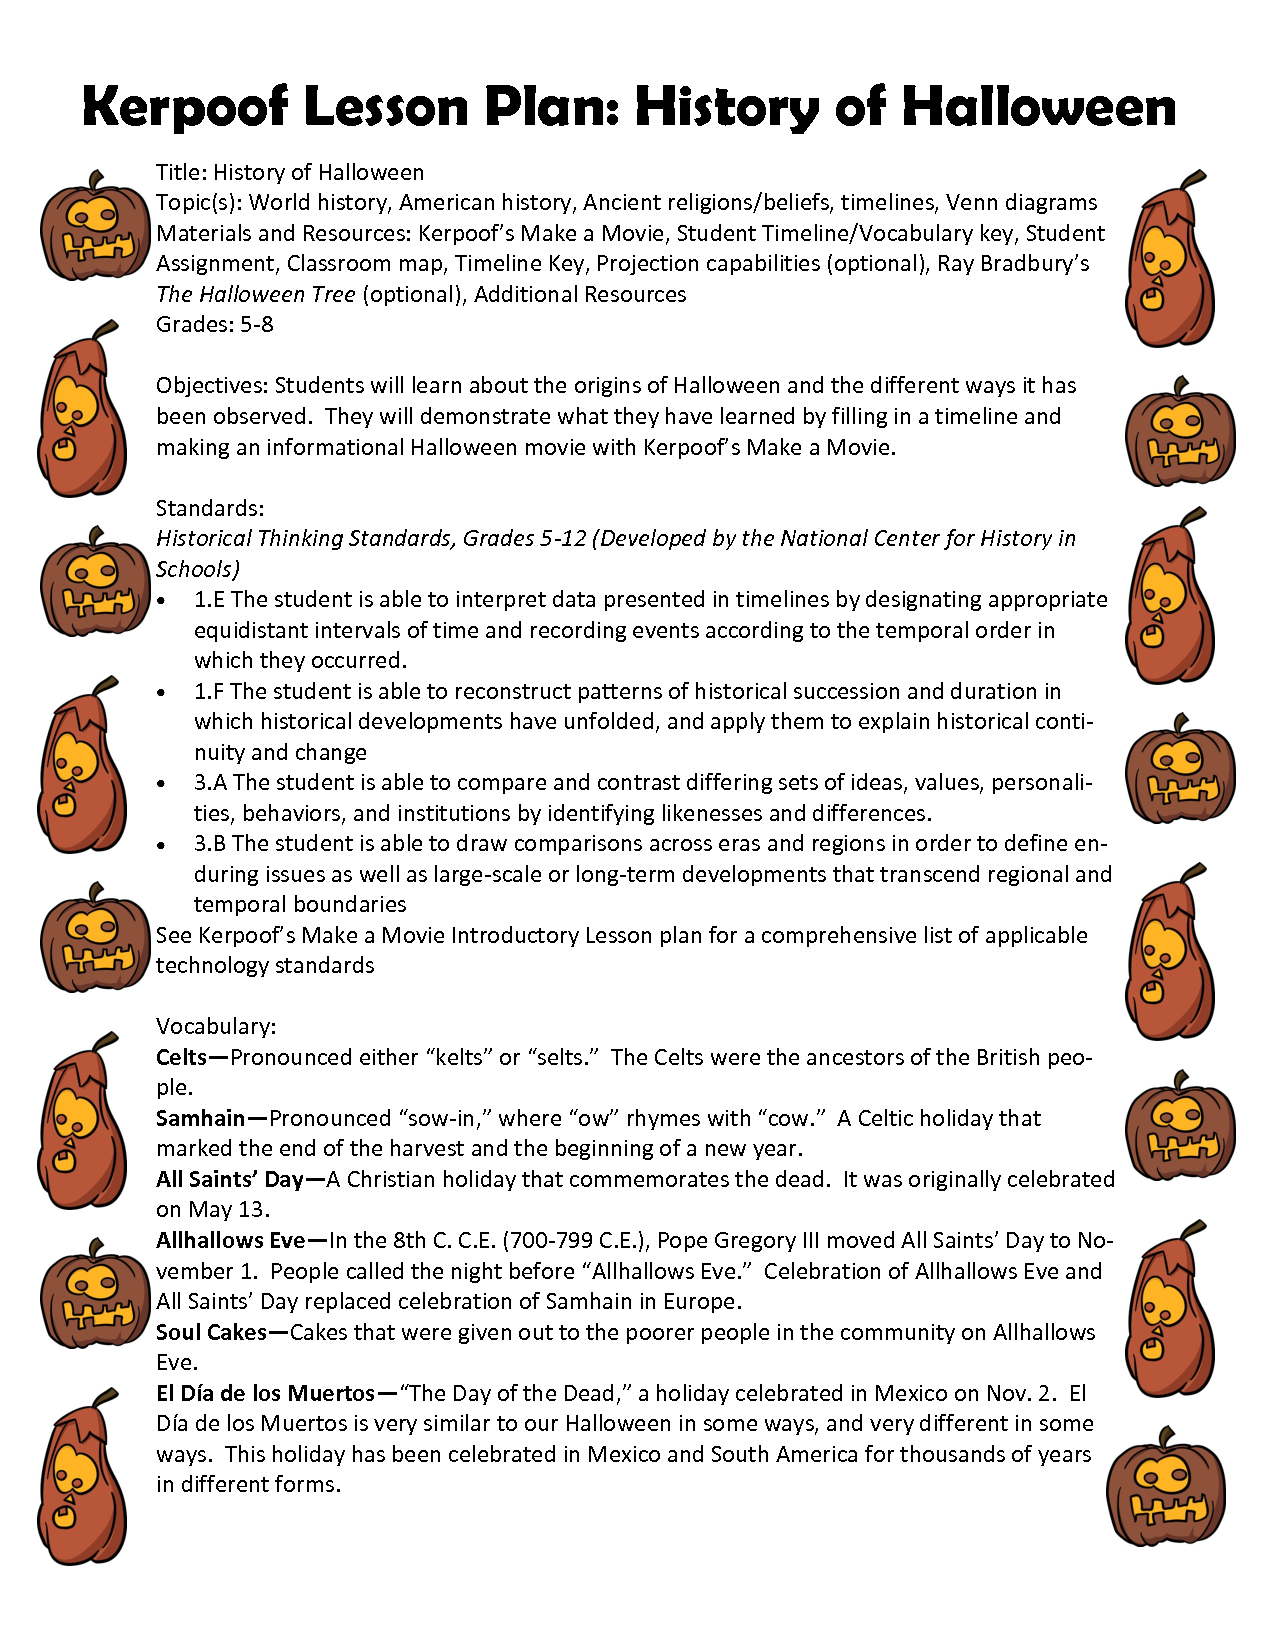 i think this is great idea to learn about the origins of halloween i think this is great idea to learn about the origins of halloween then also the way people celebrate it especially halloween around the corner